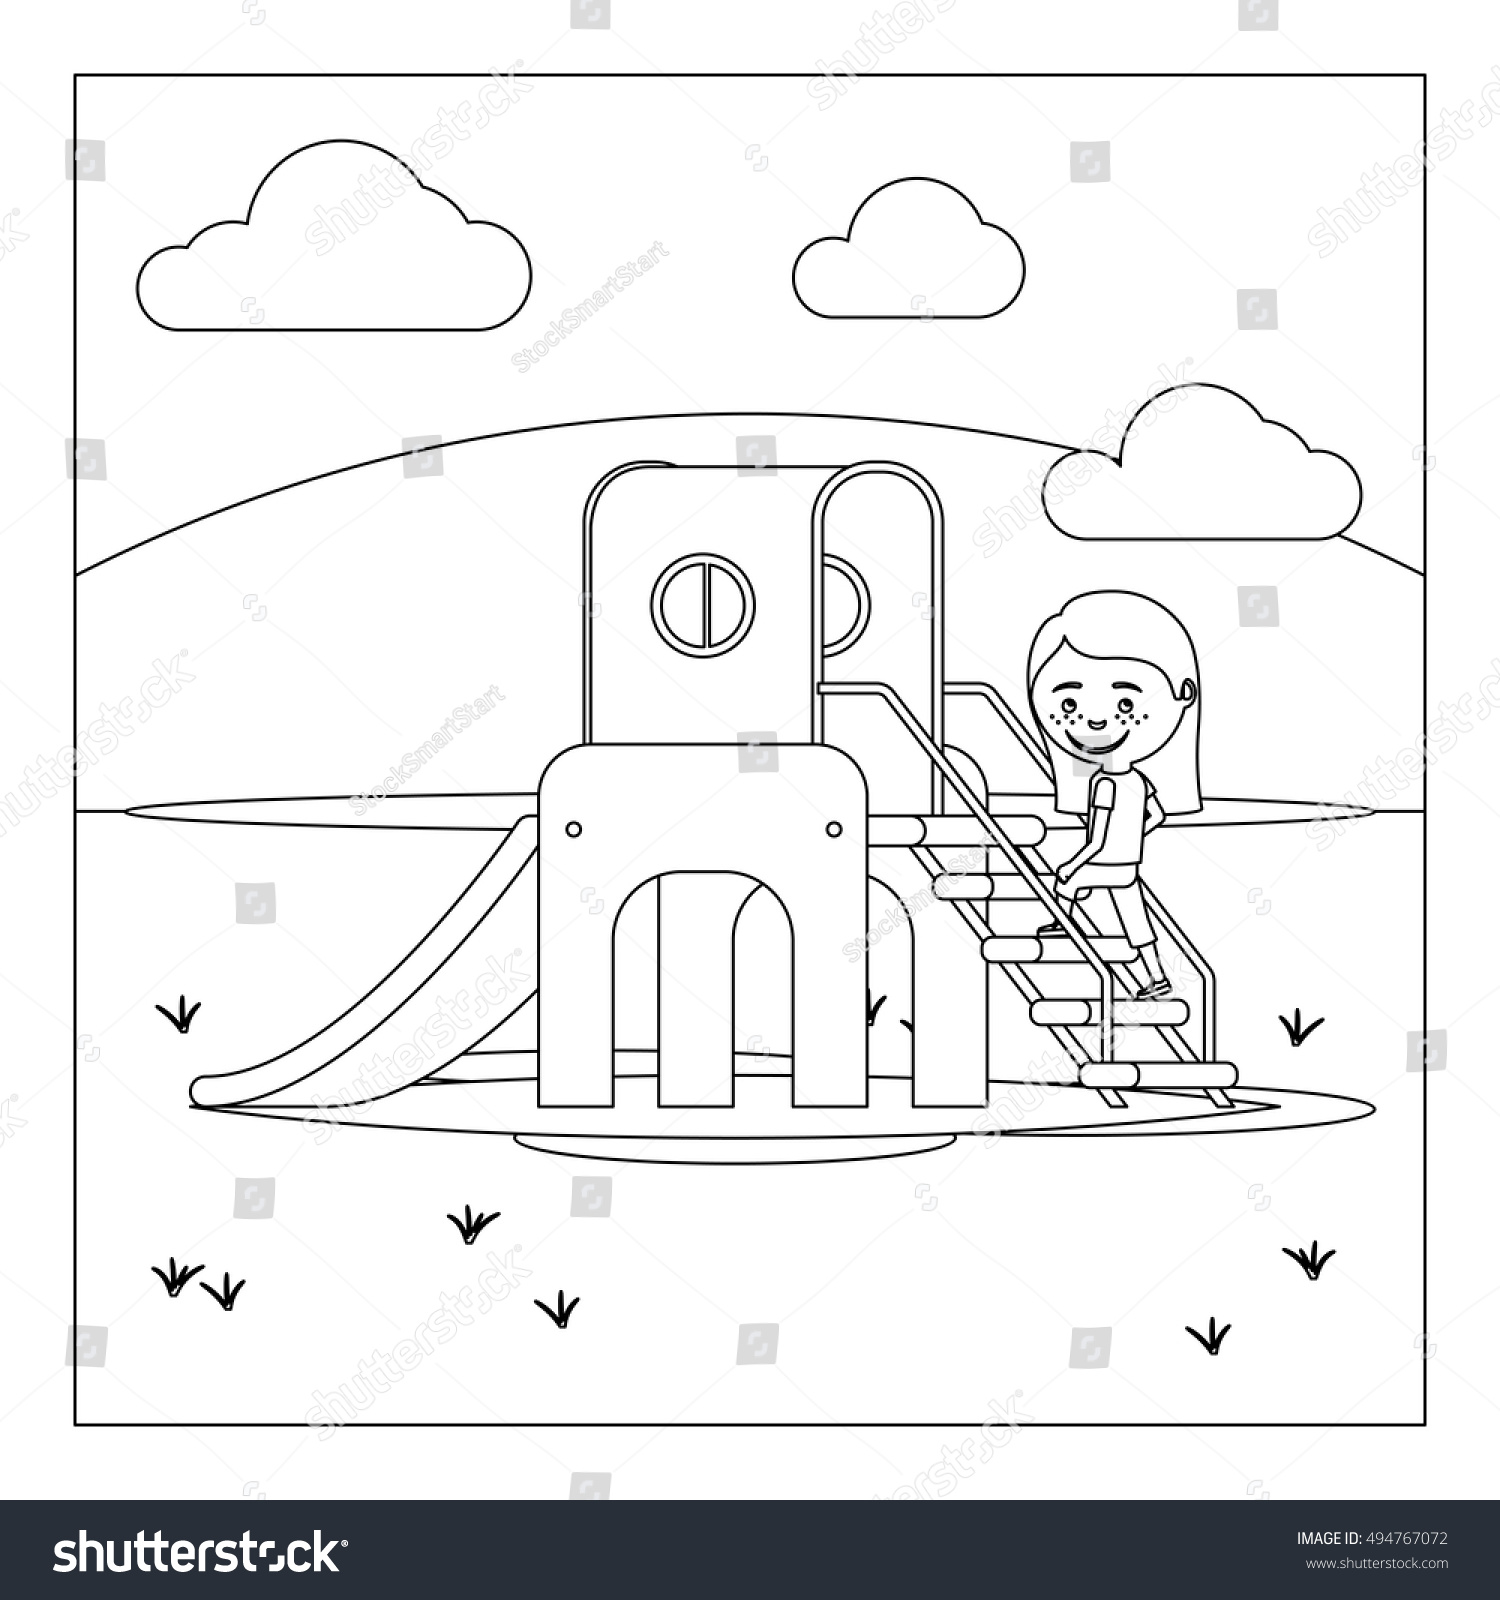 Coloring book page of a playground - Coloring Book Page Design With Kid On Playground Vector Illustration